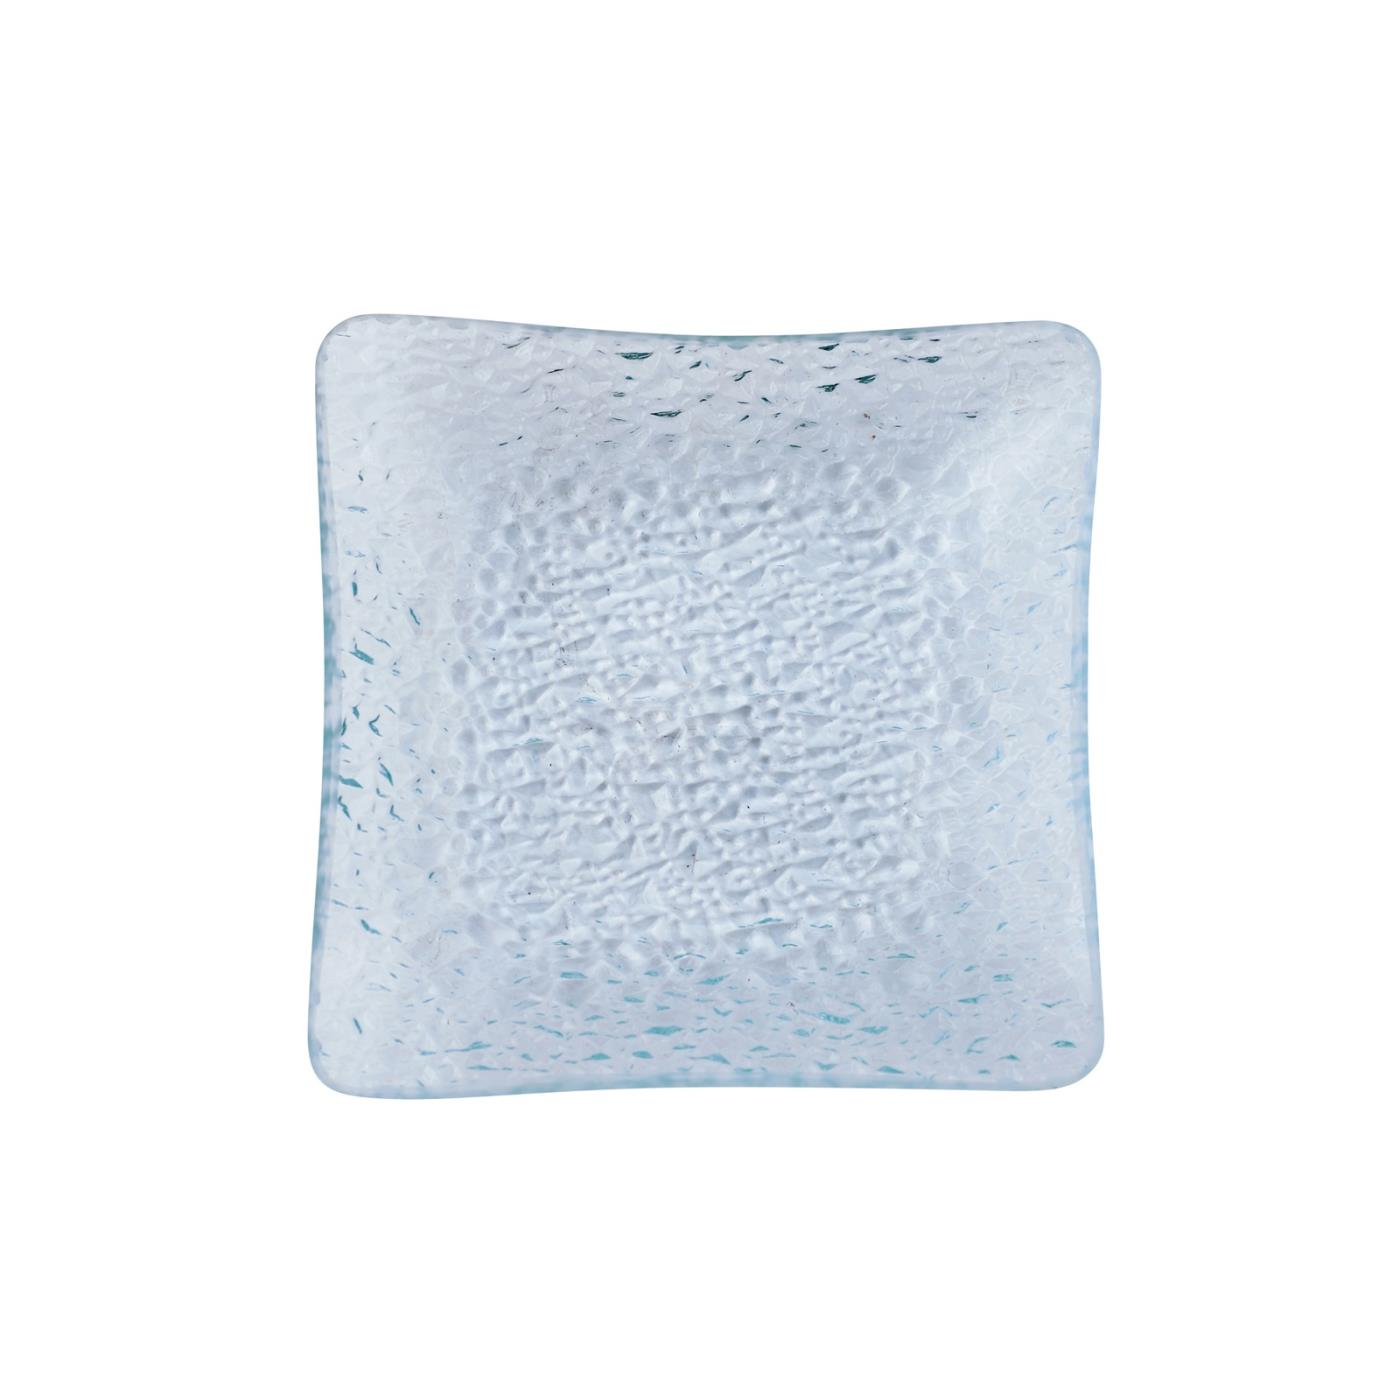 Bubble Square Glass Plate 5